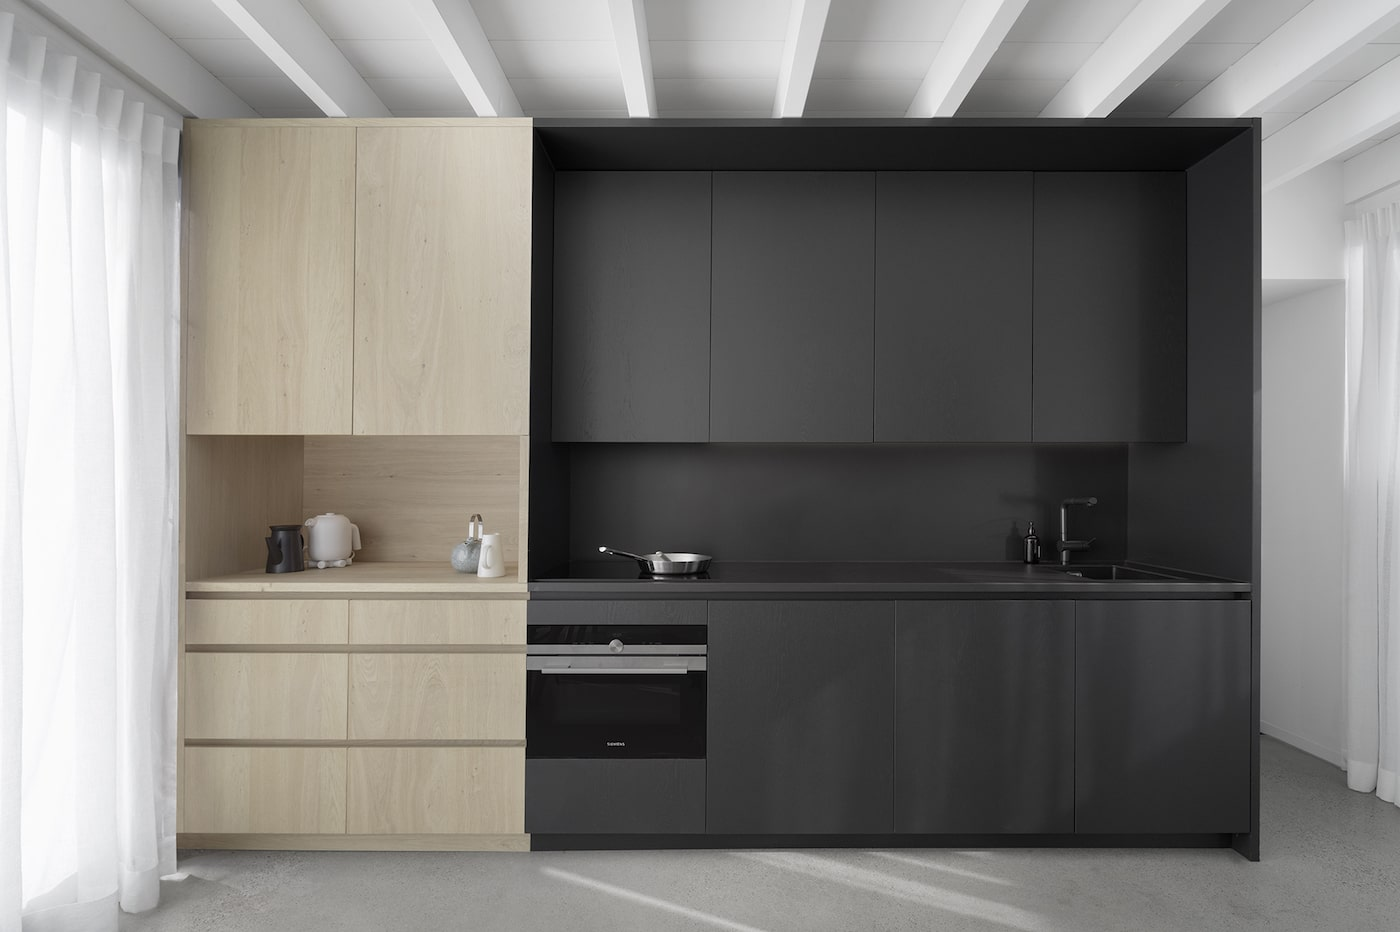 Close up of black and blond timber kitchen joinery